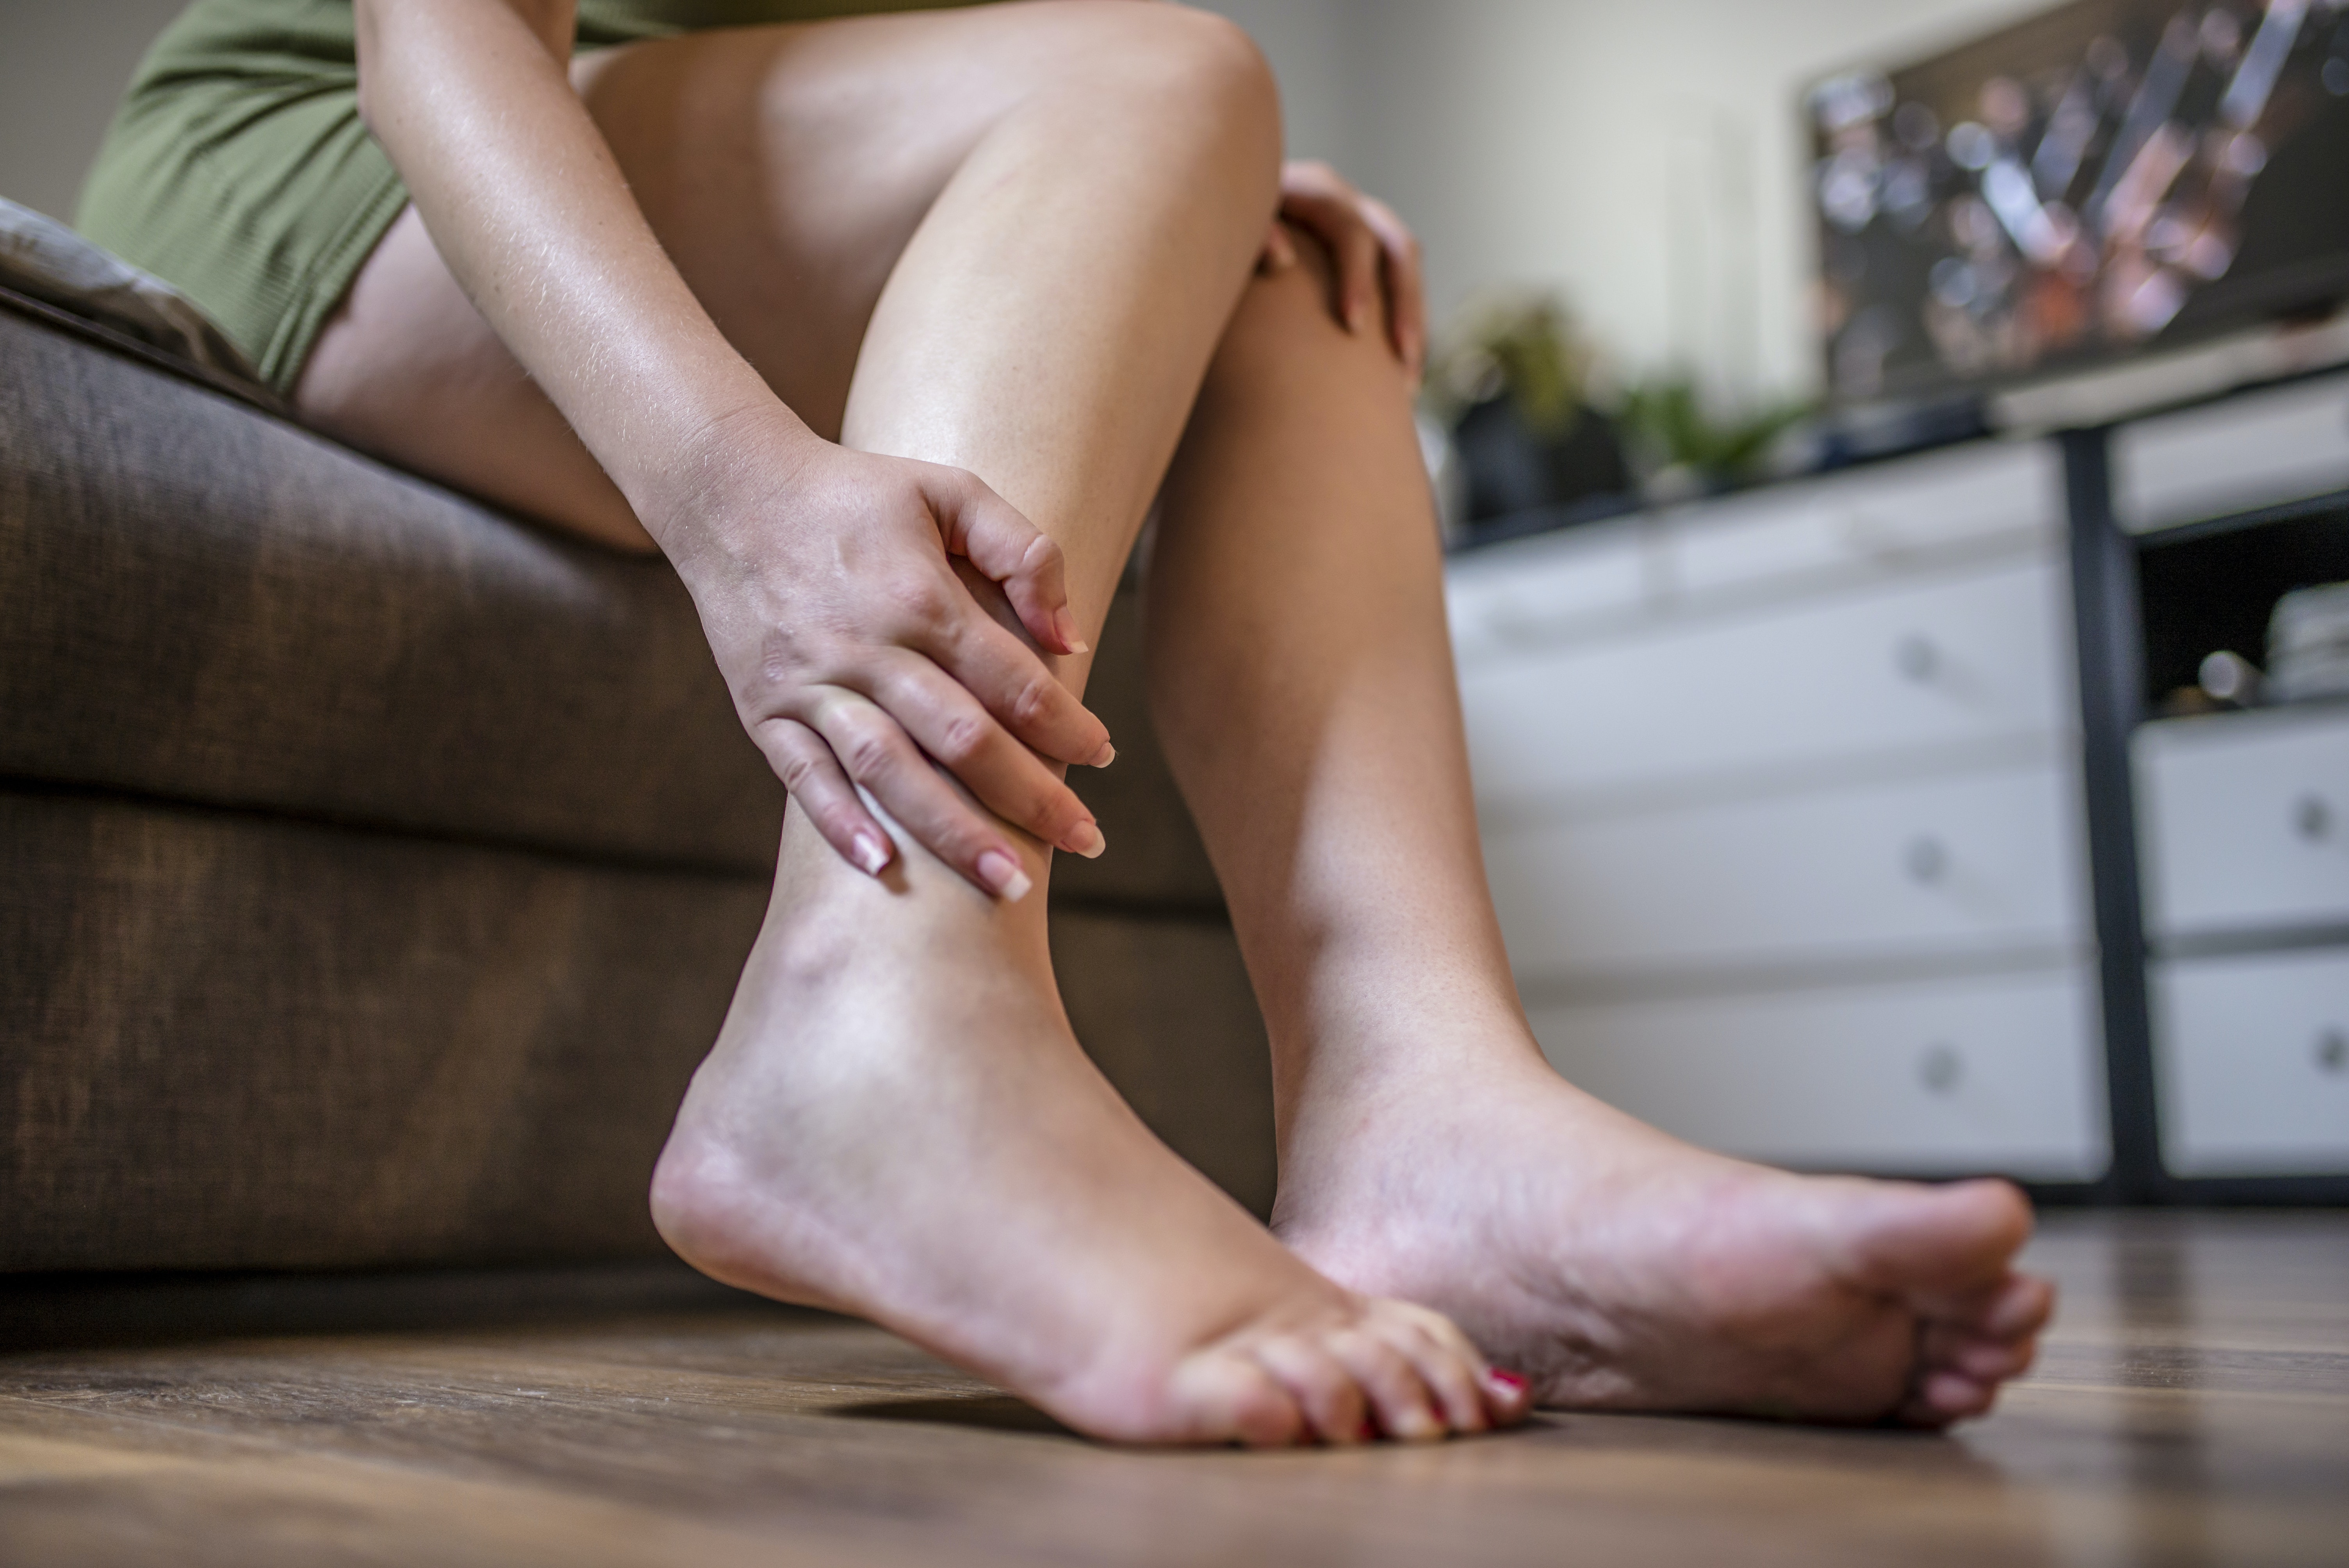 An image depicting a person suffering from moderate shin pain symptoms